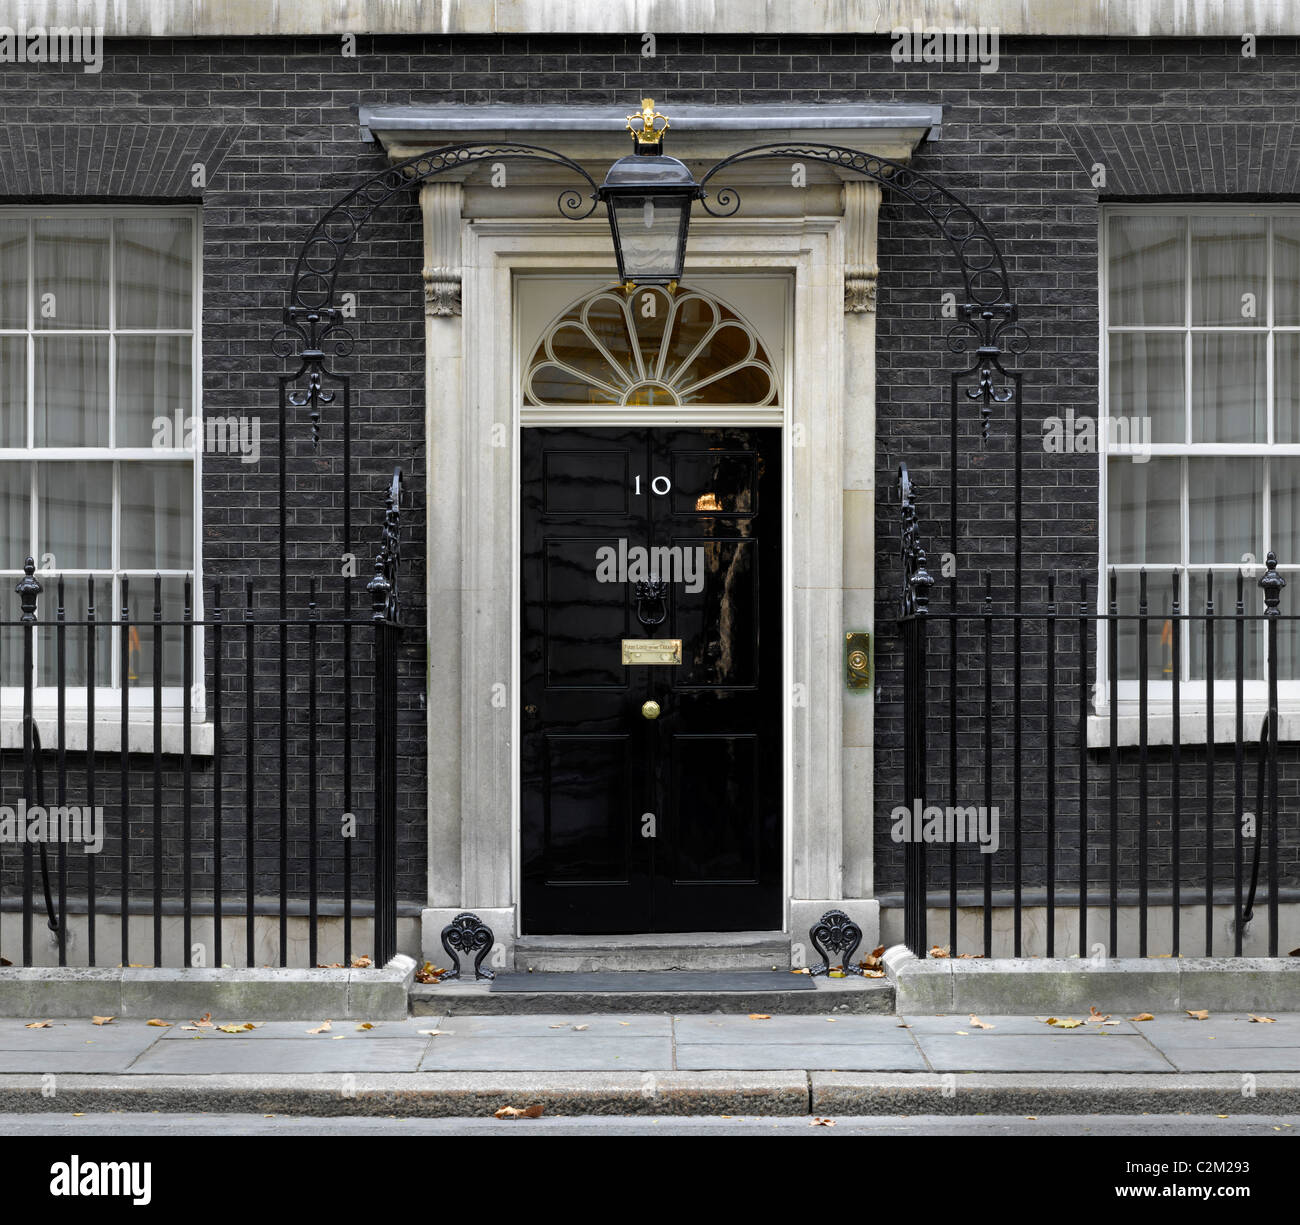 number 10 downing street westminster london stock photo royalty free image 36090911 alamy. Black Bedroom Furniture Sets. Home Design Ideas